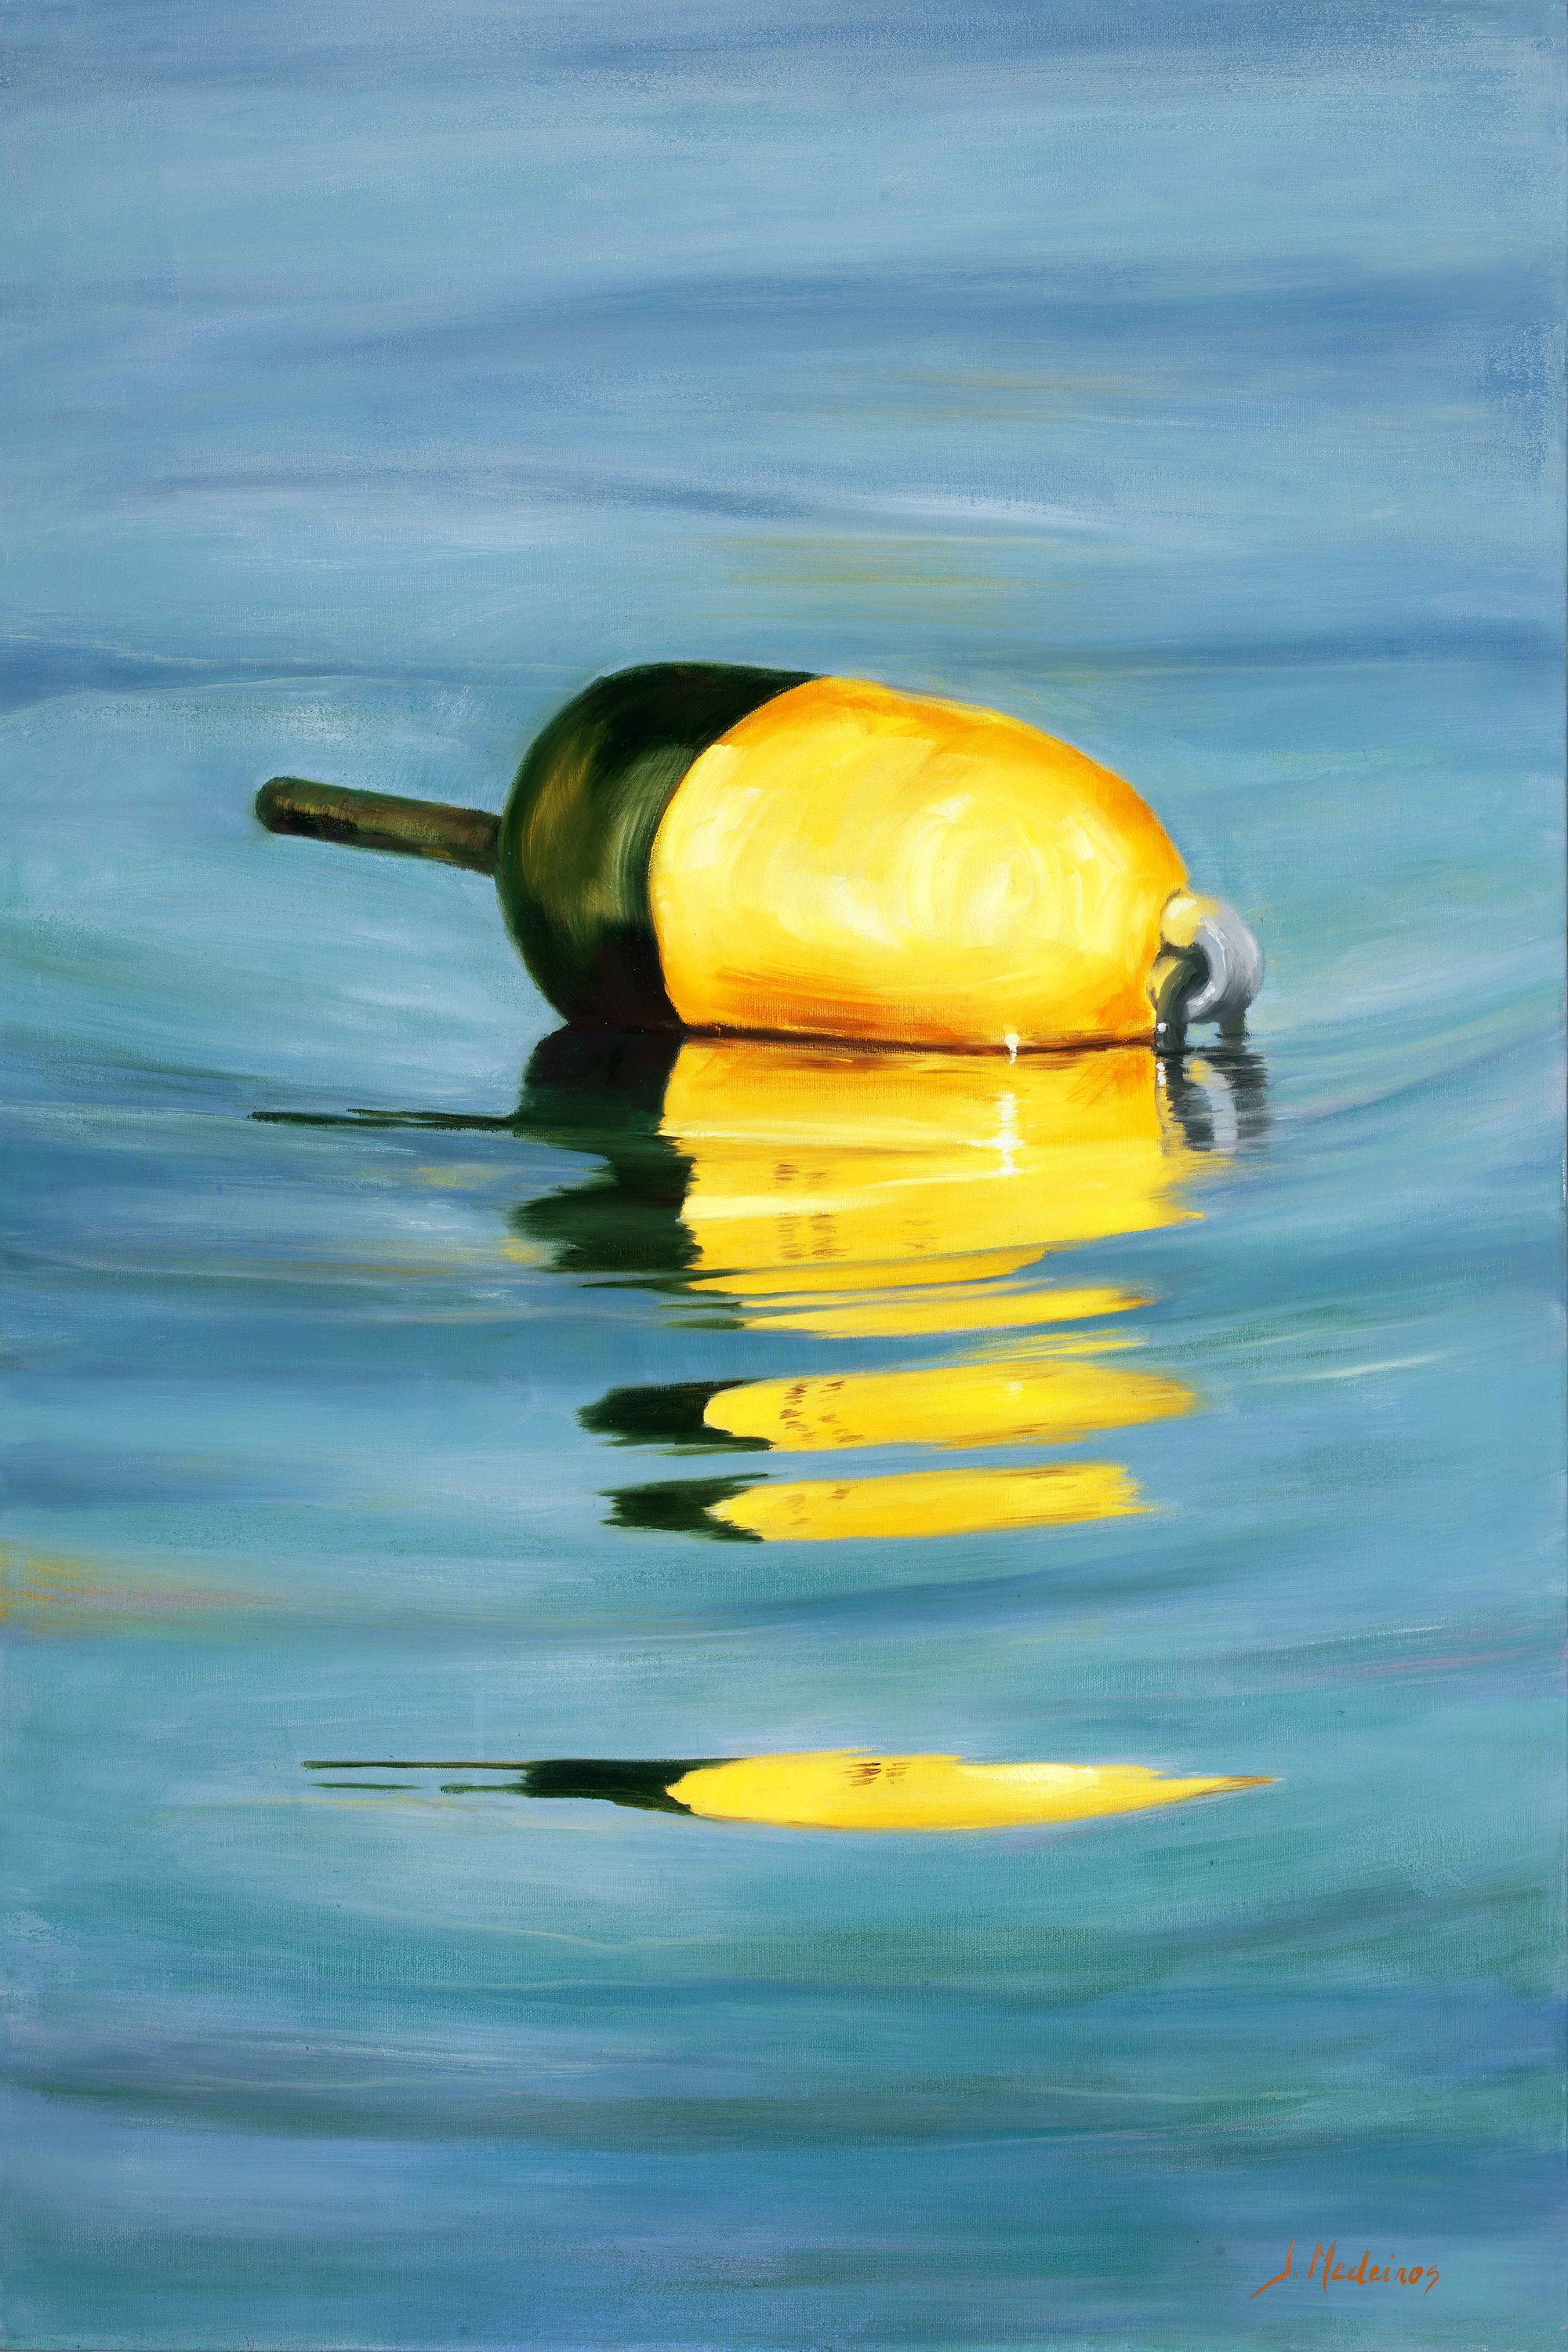 Picture 205 yellow lorster buoy 24x36 crop b flat 89mg sl w2kshy